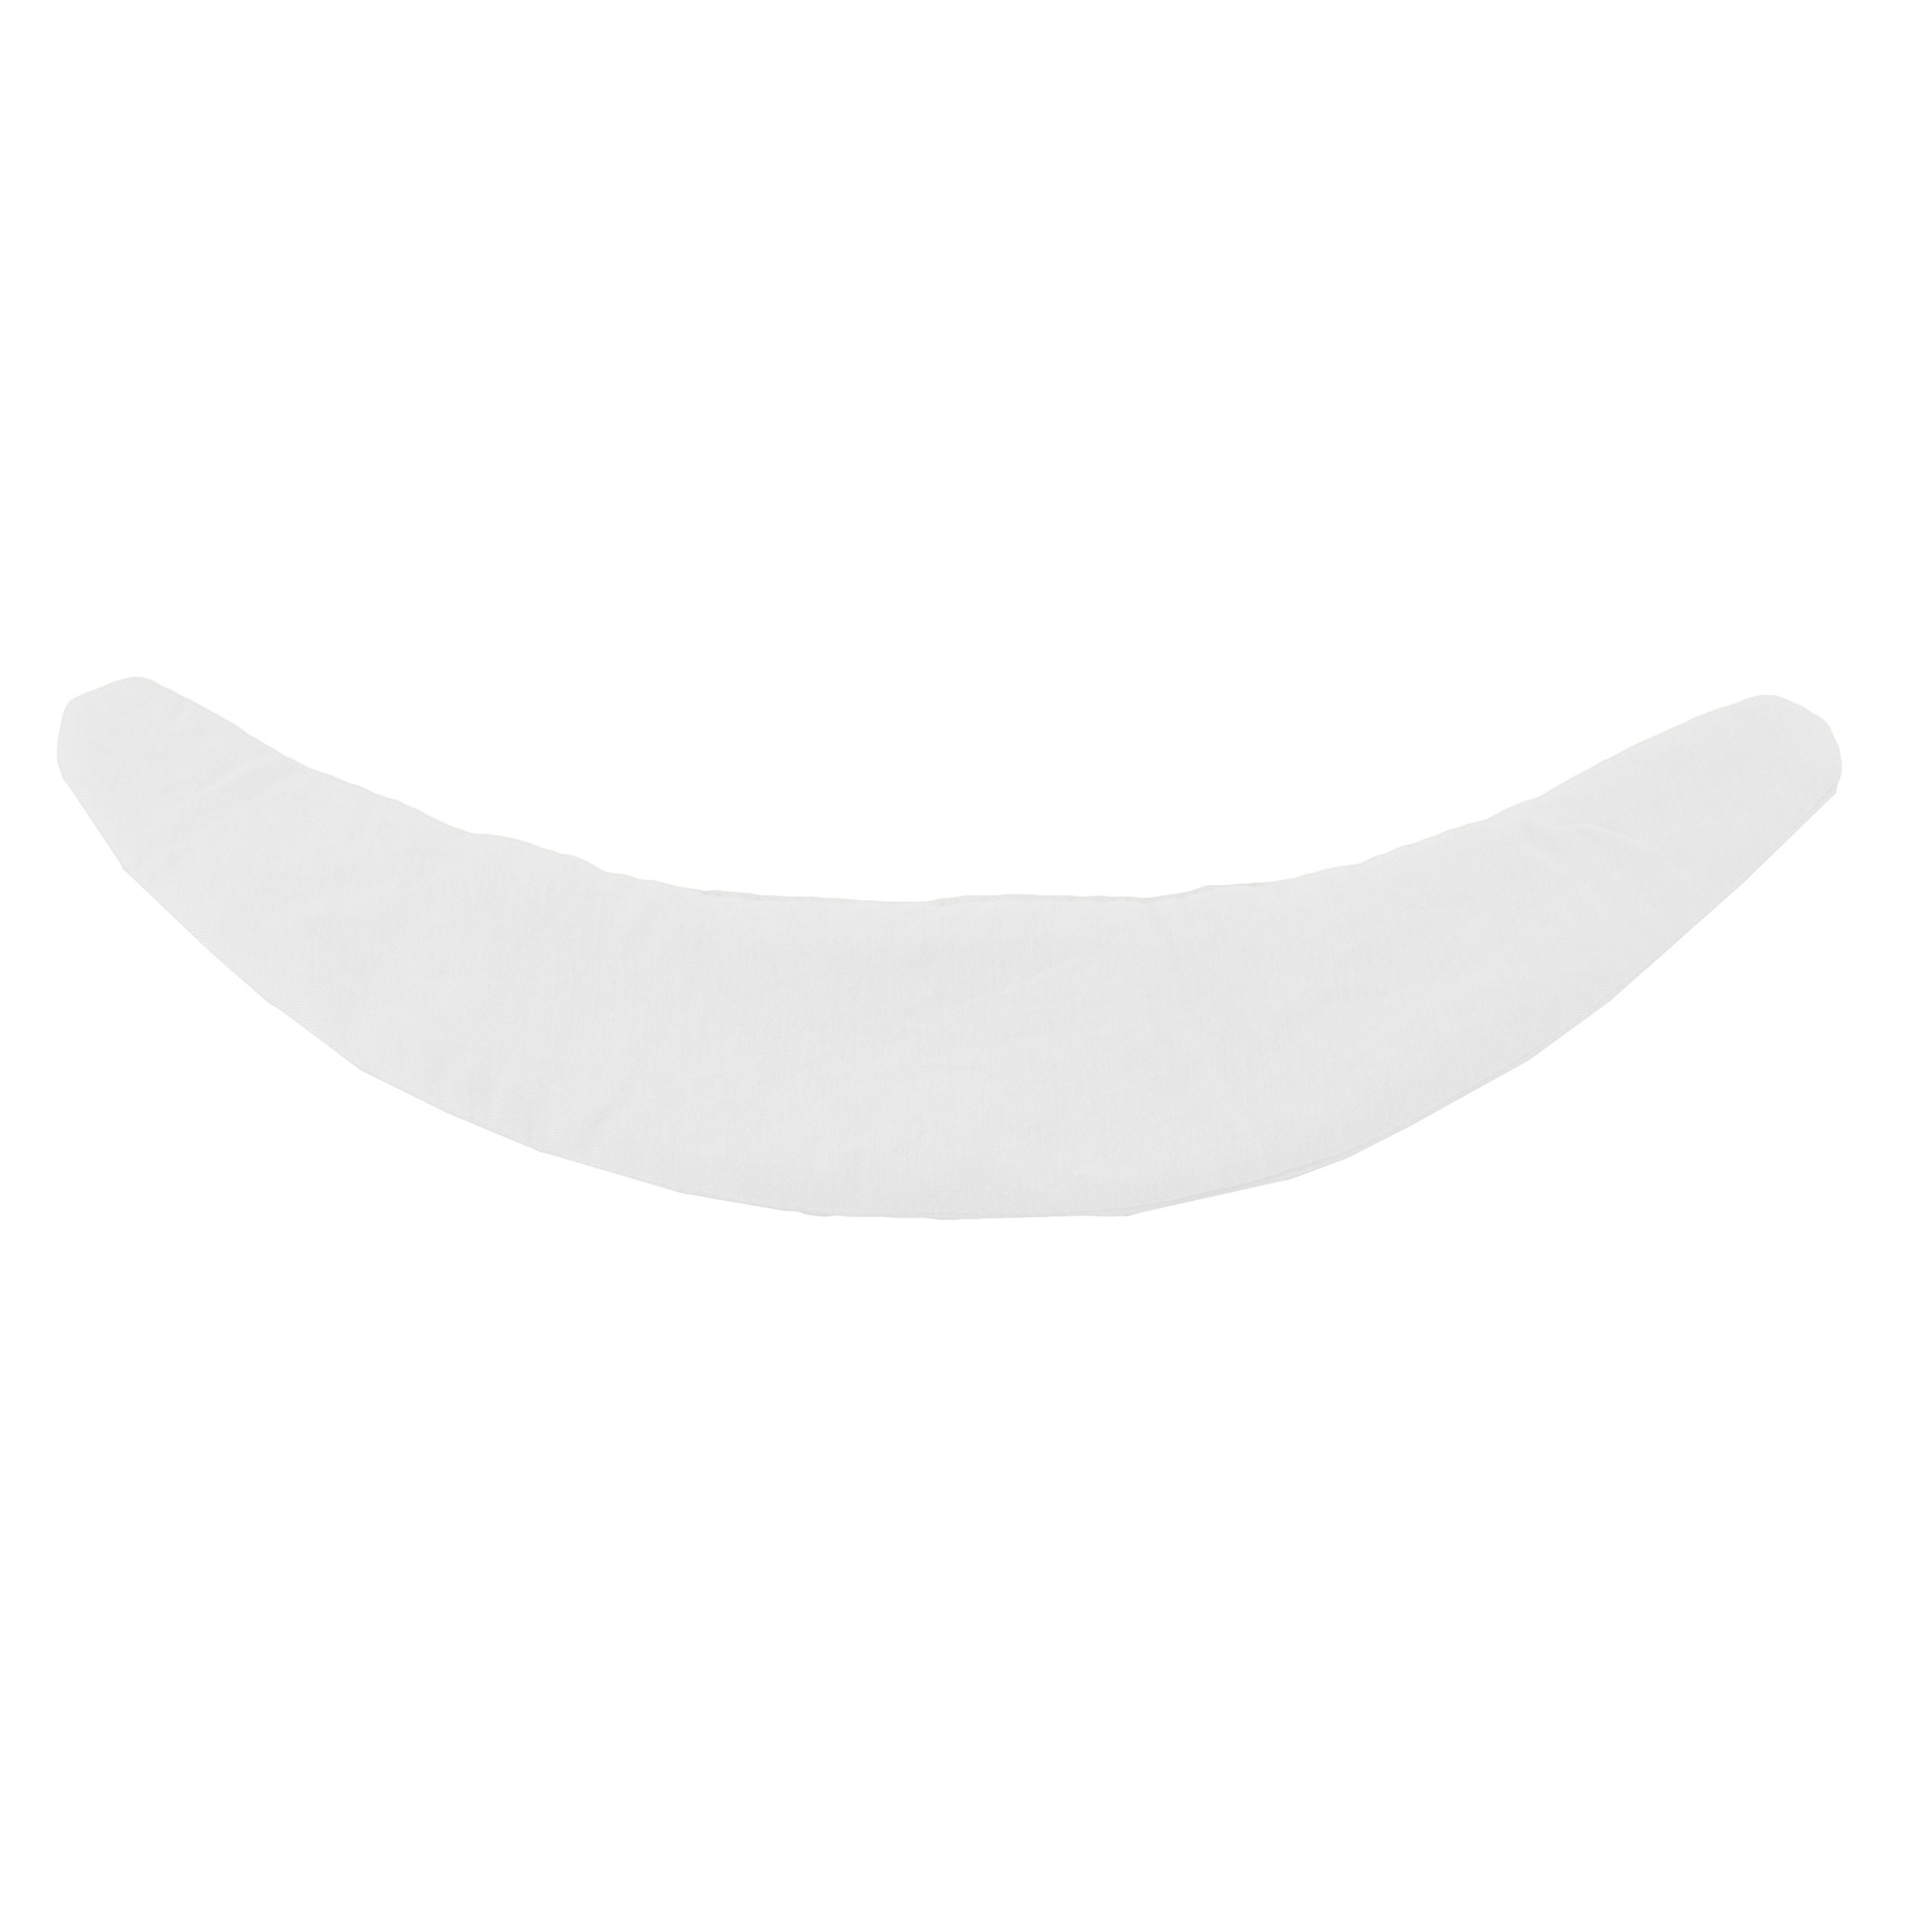 Cotton Tummy Liner (3-Pack, Medium, White) by More of Me to Love (Image #4)